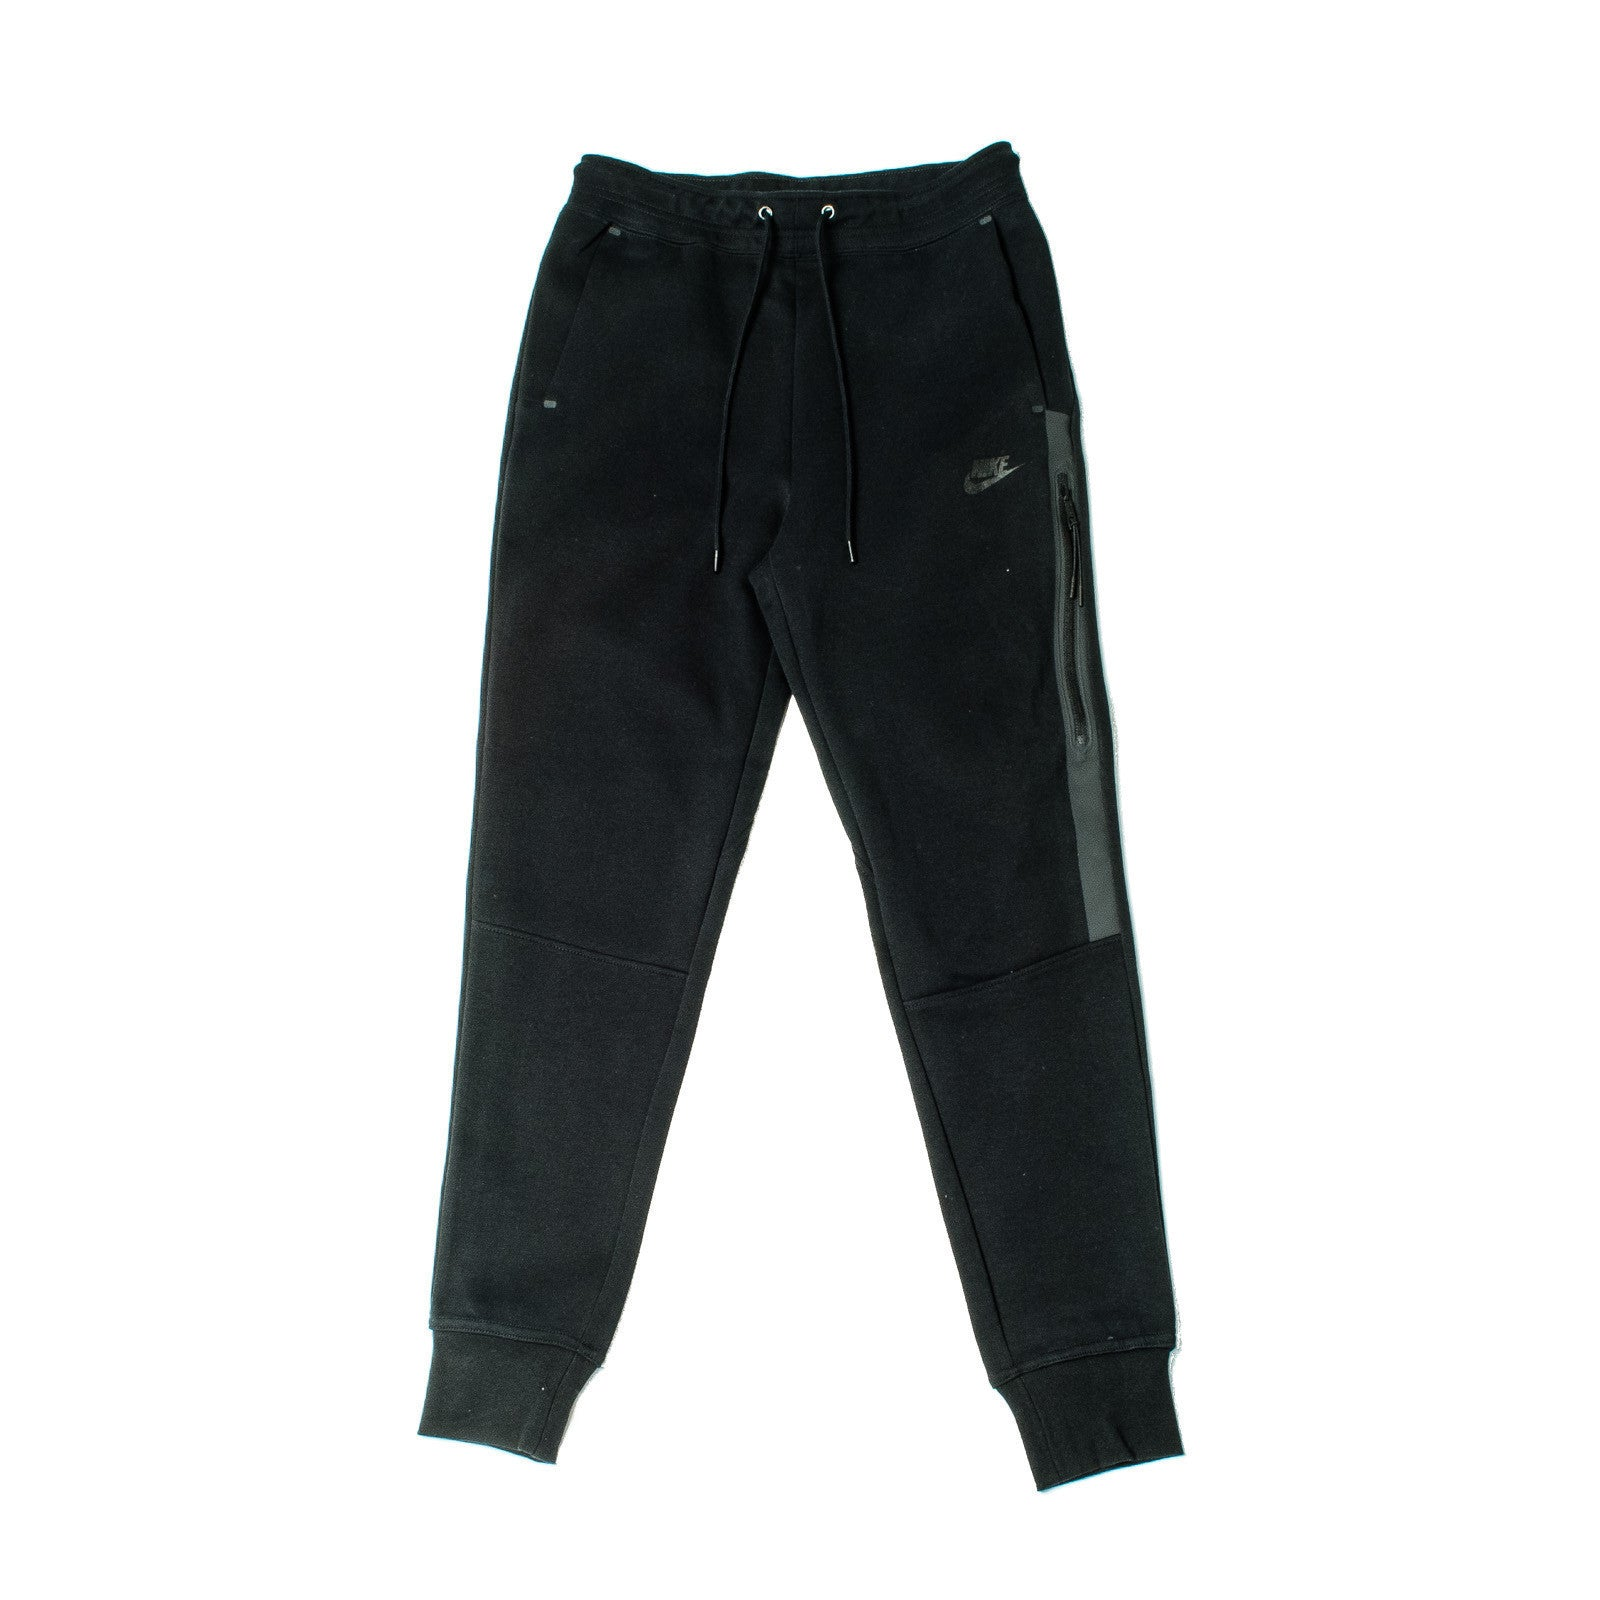 W Tech Fleece Pant 683800-010 Black